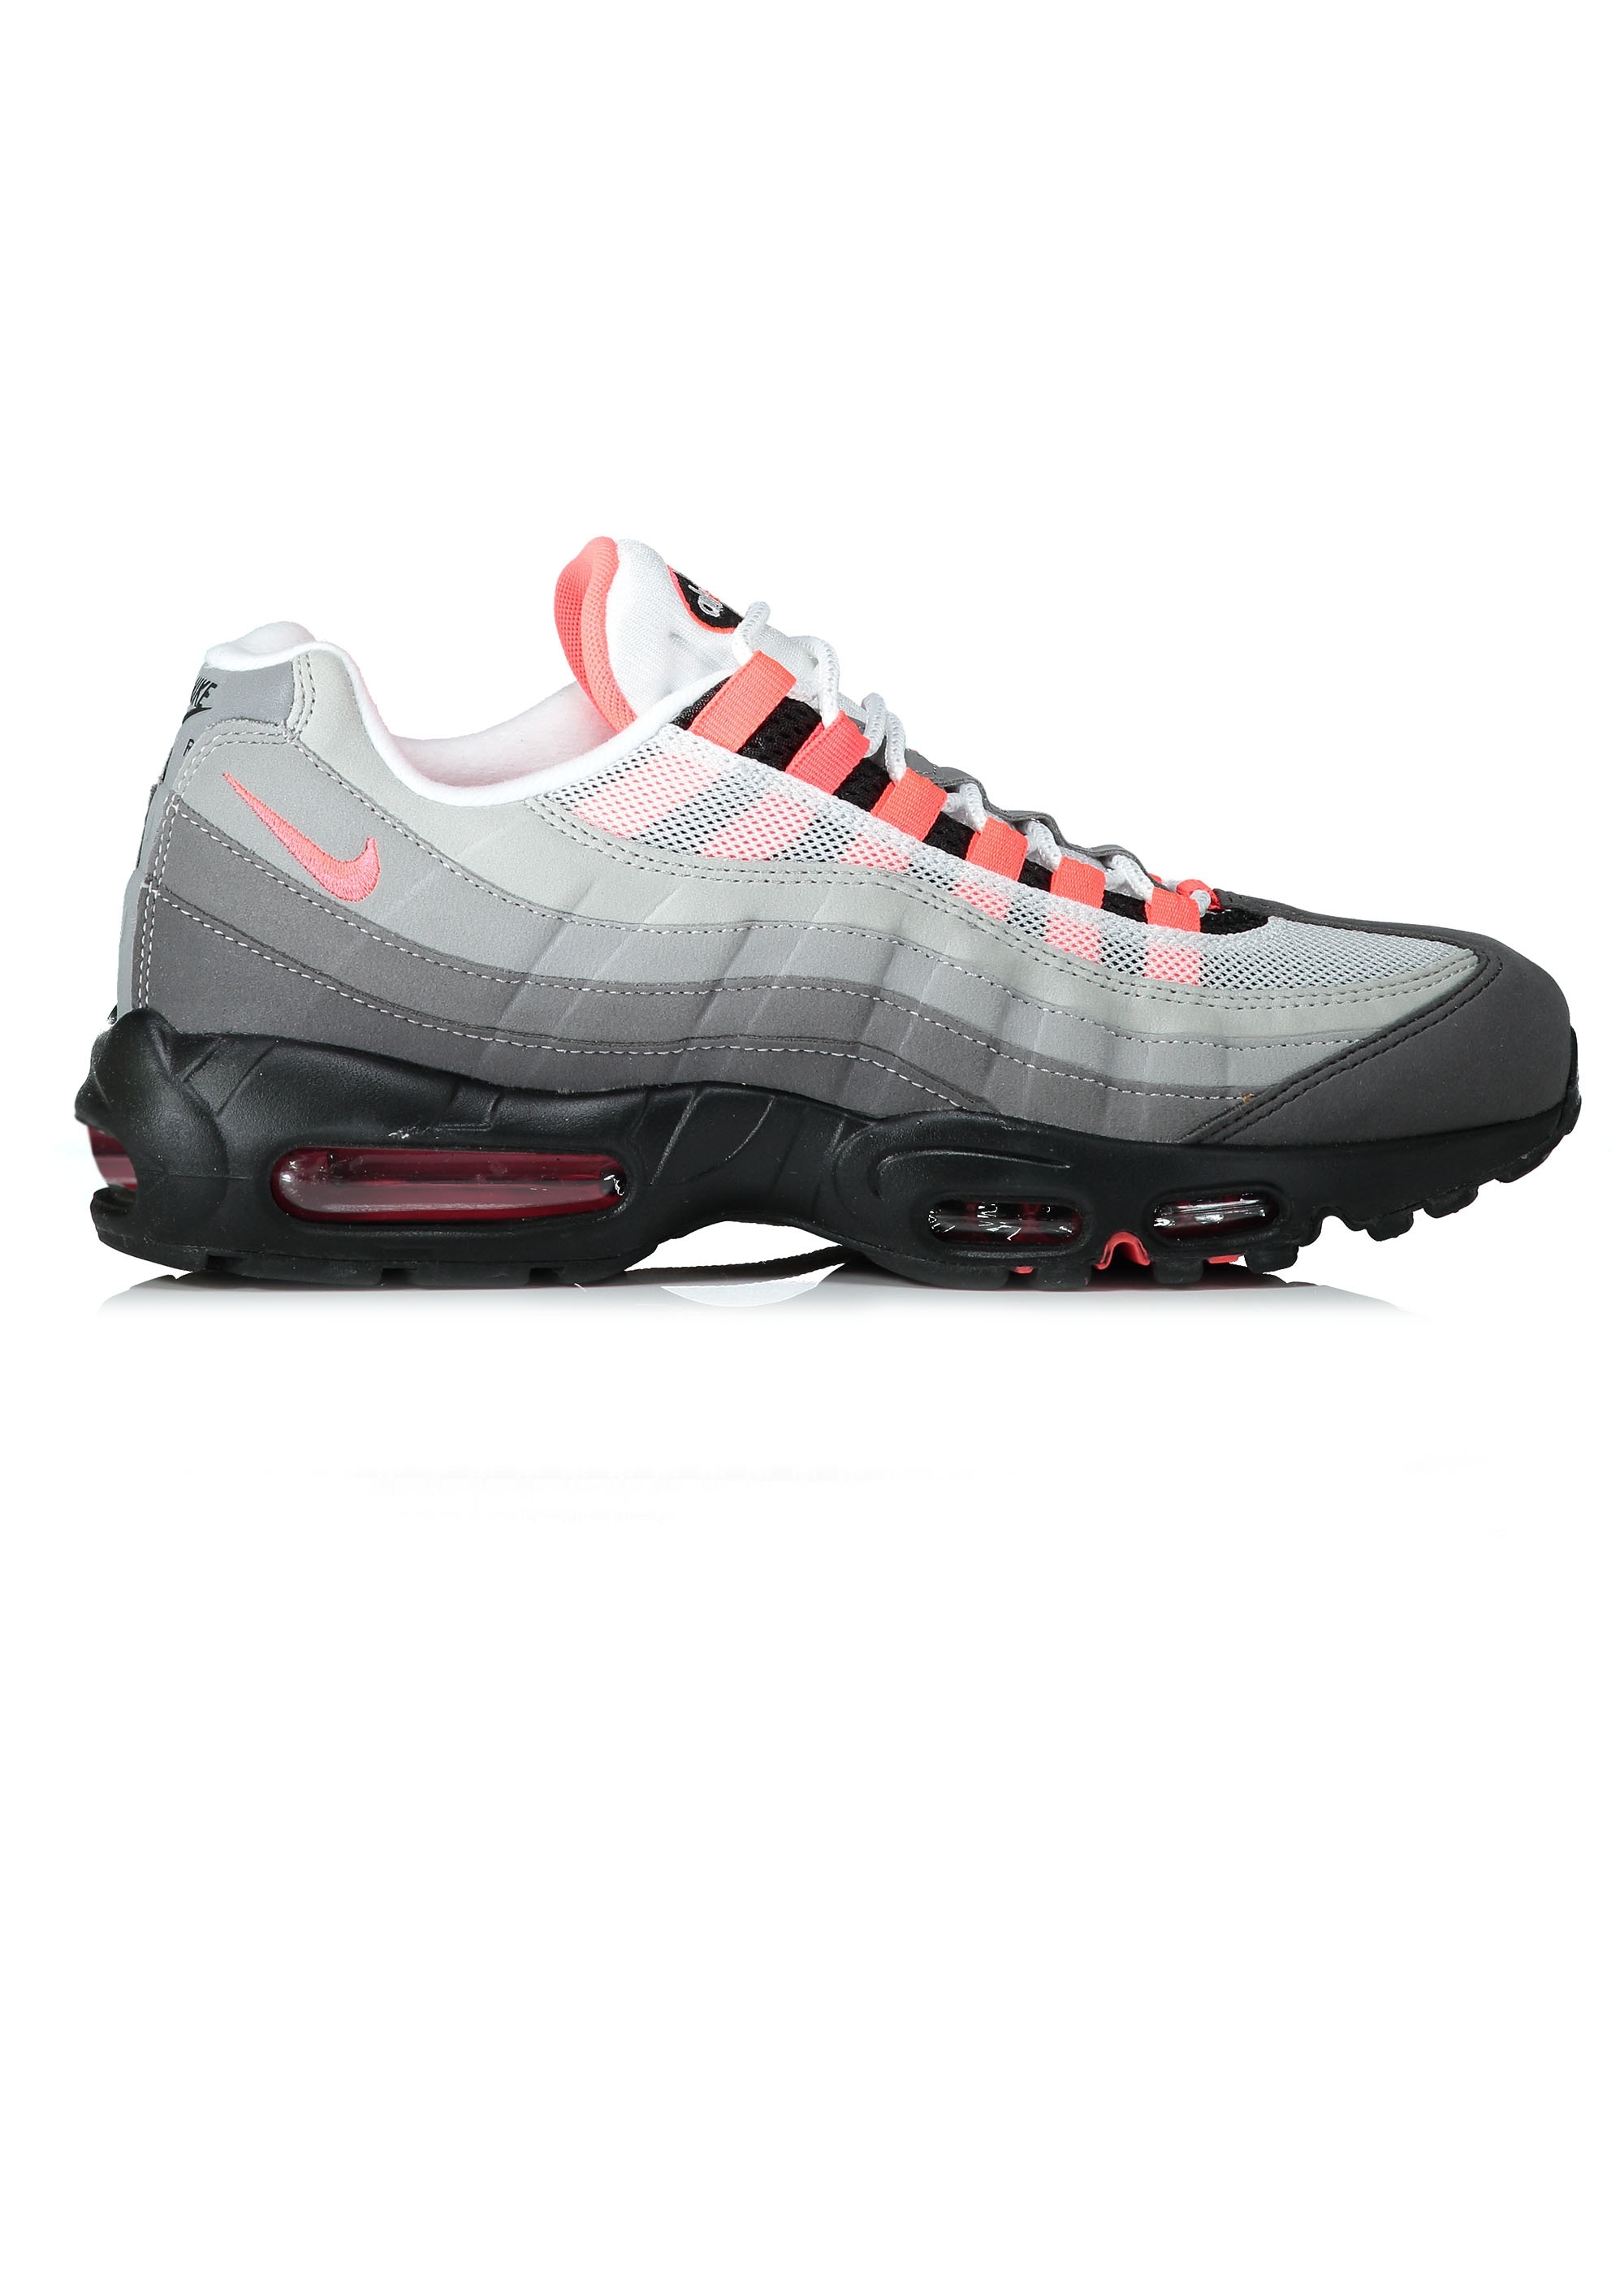 new styles f40ff e9a37 Nike Footwear Air Max 95 OG - White / Solar Red